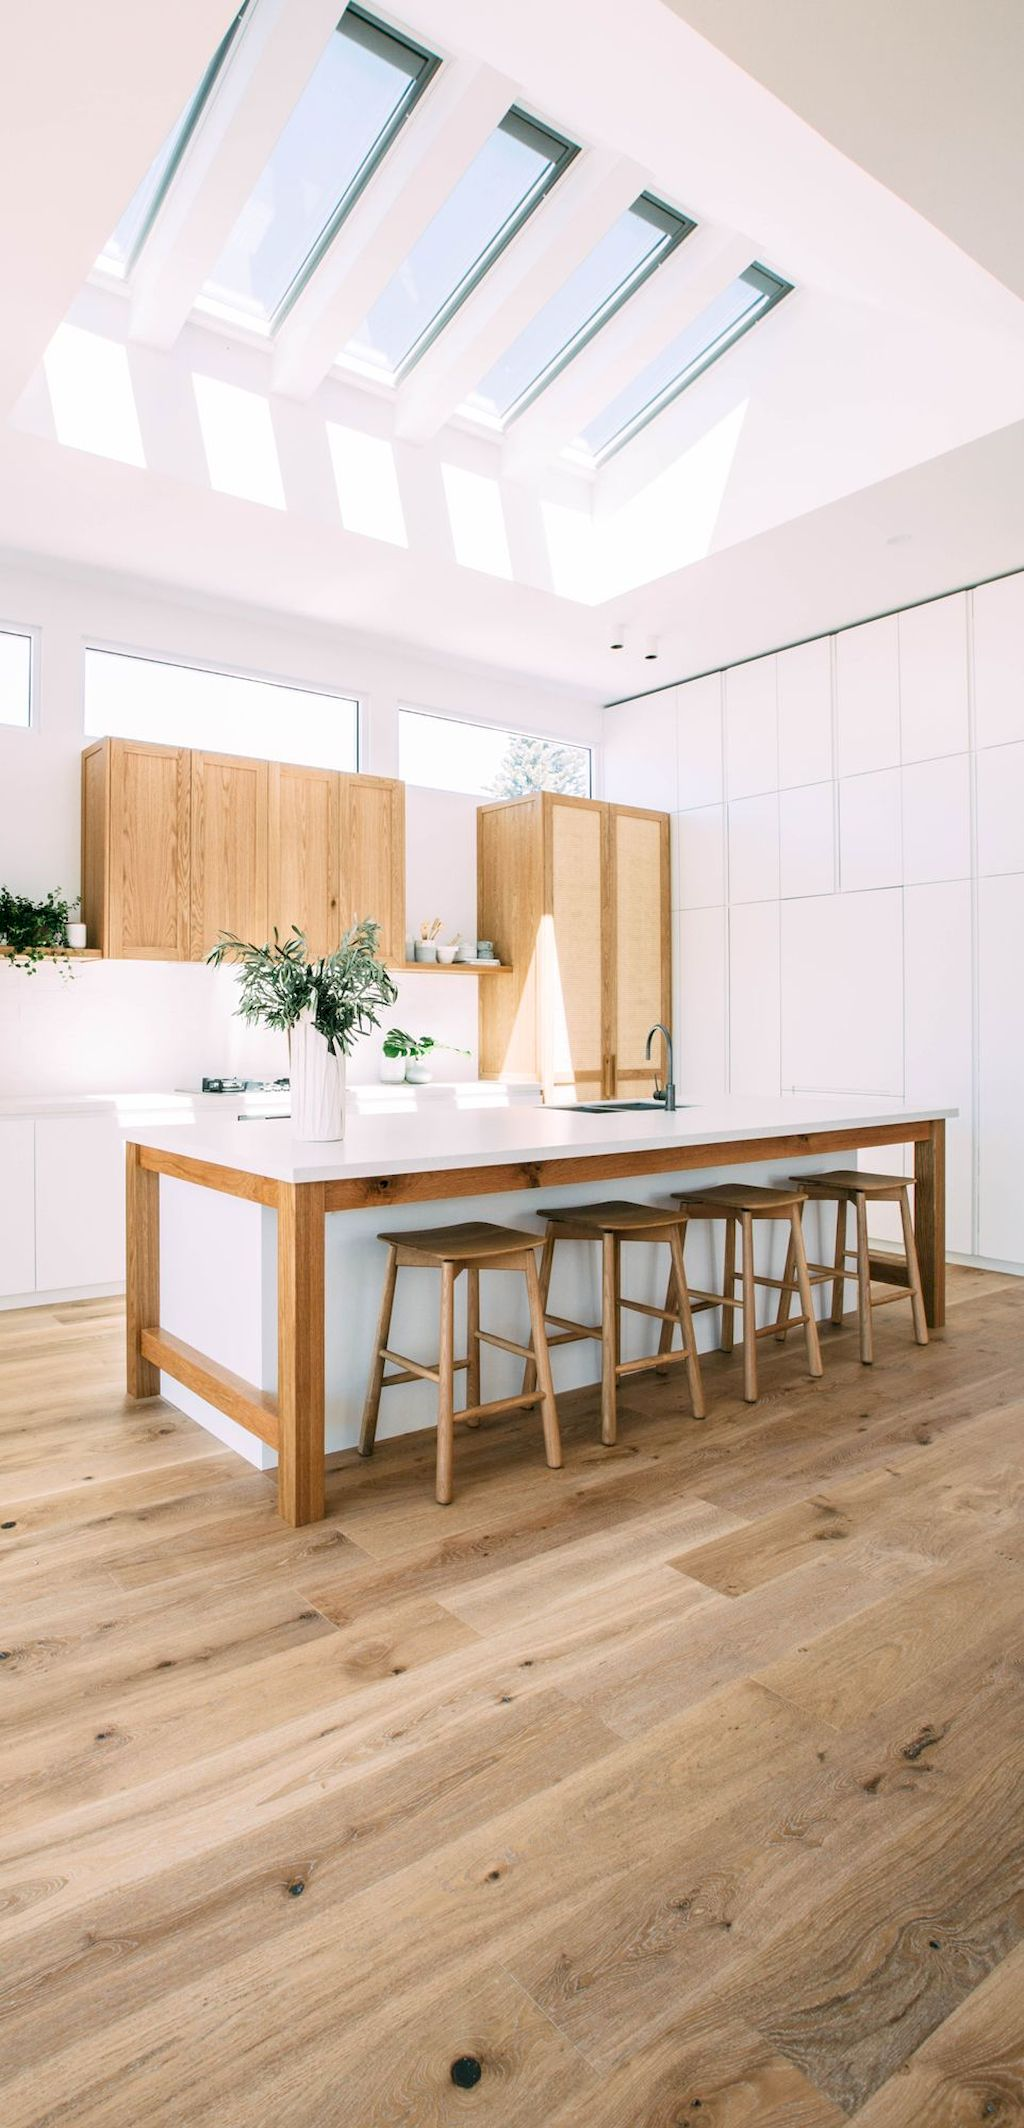 Inspiring Wooden Floor Ideas with Light Wood Tone Part 19